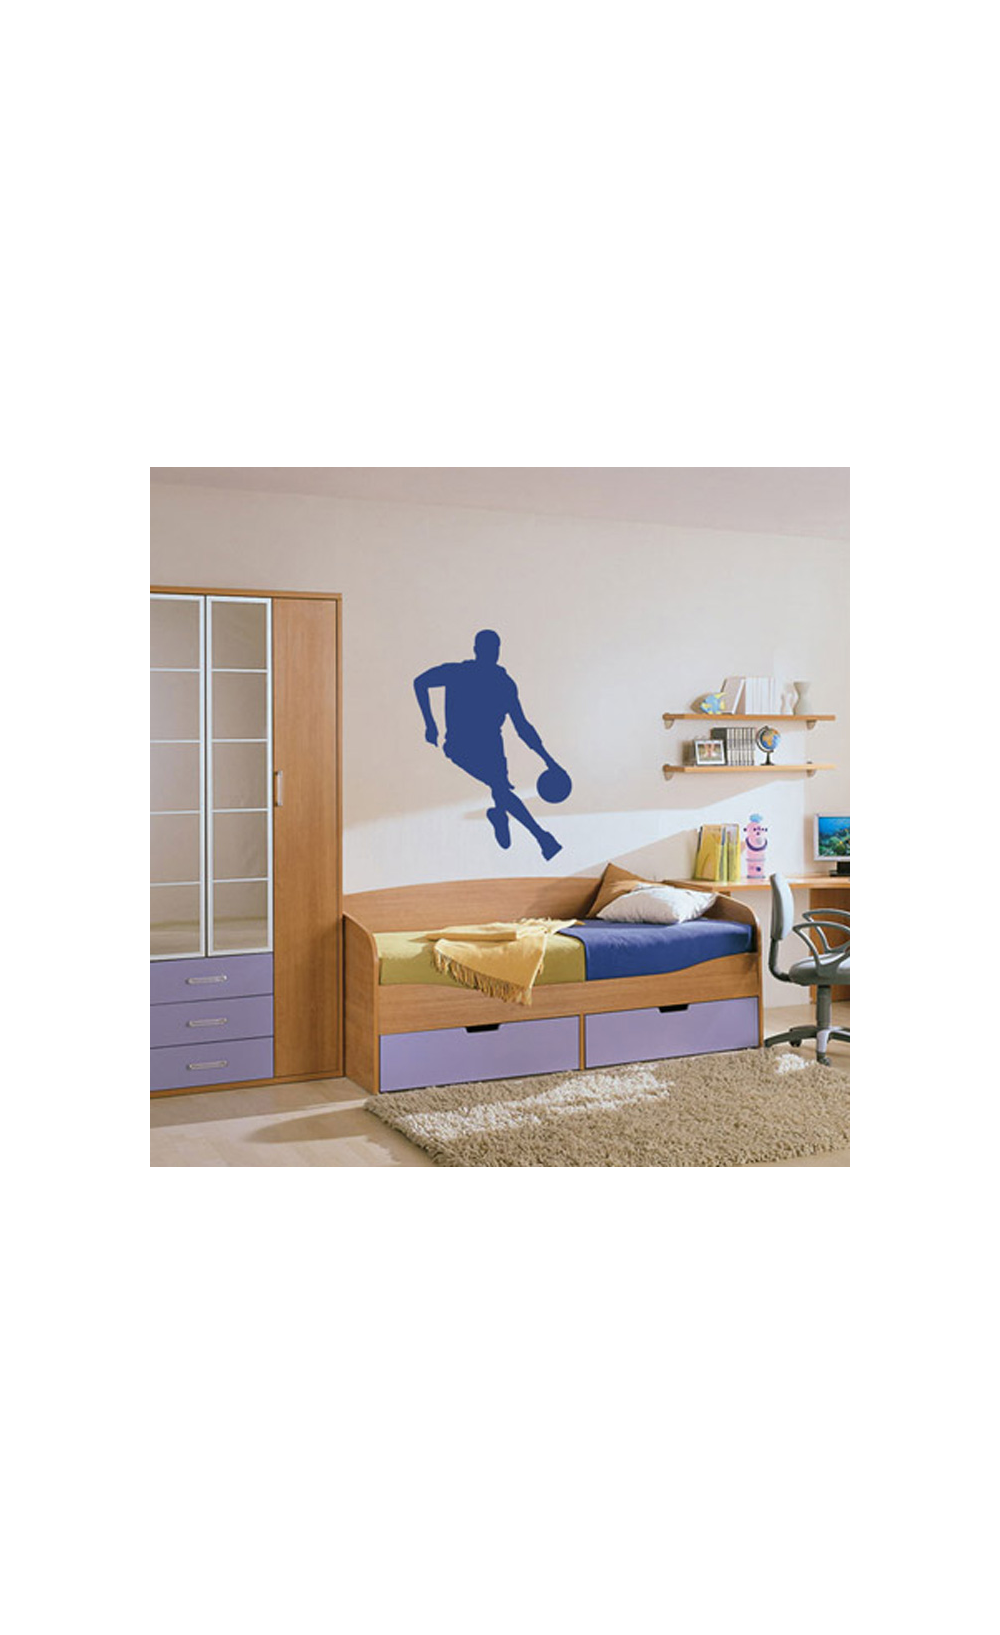 sticker mural pour d corer son int rieur petit prix mod le hand ball. Black Bedroom Furniture Sets. Home Design Ideas